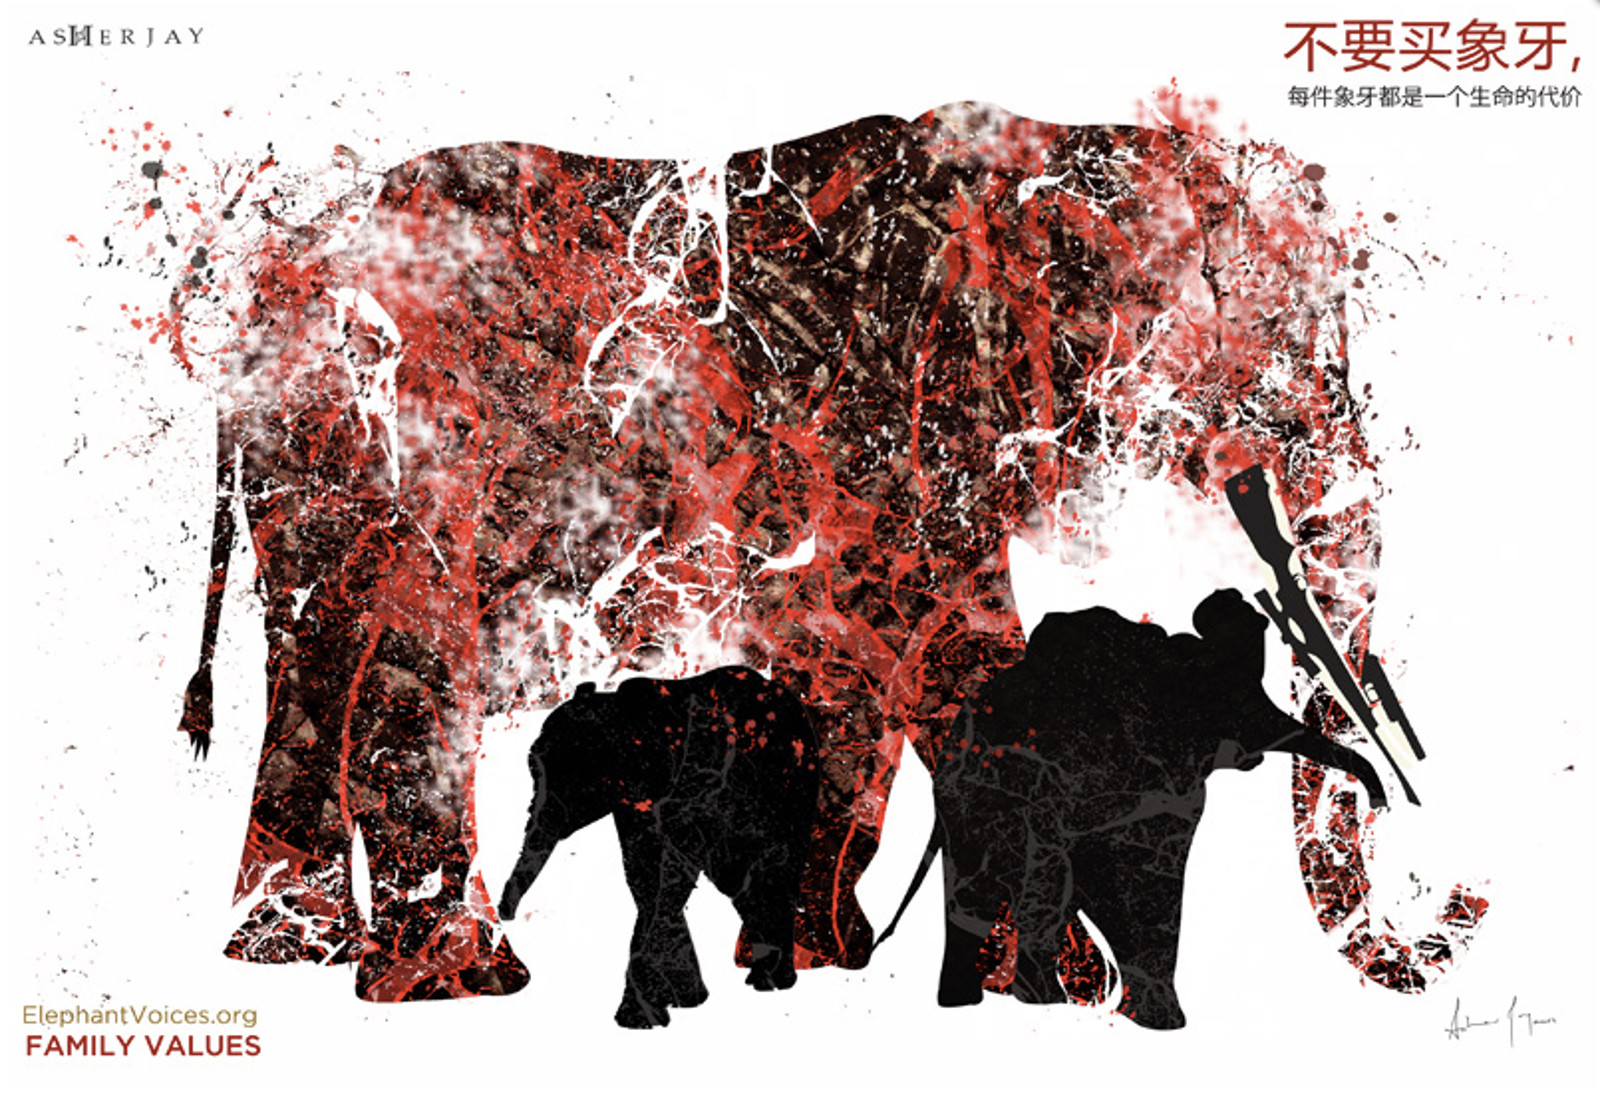 Using Art as a Weapon Against Poaching, Asher Jay Takes on the Illicit Wildlife Trade